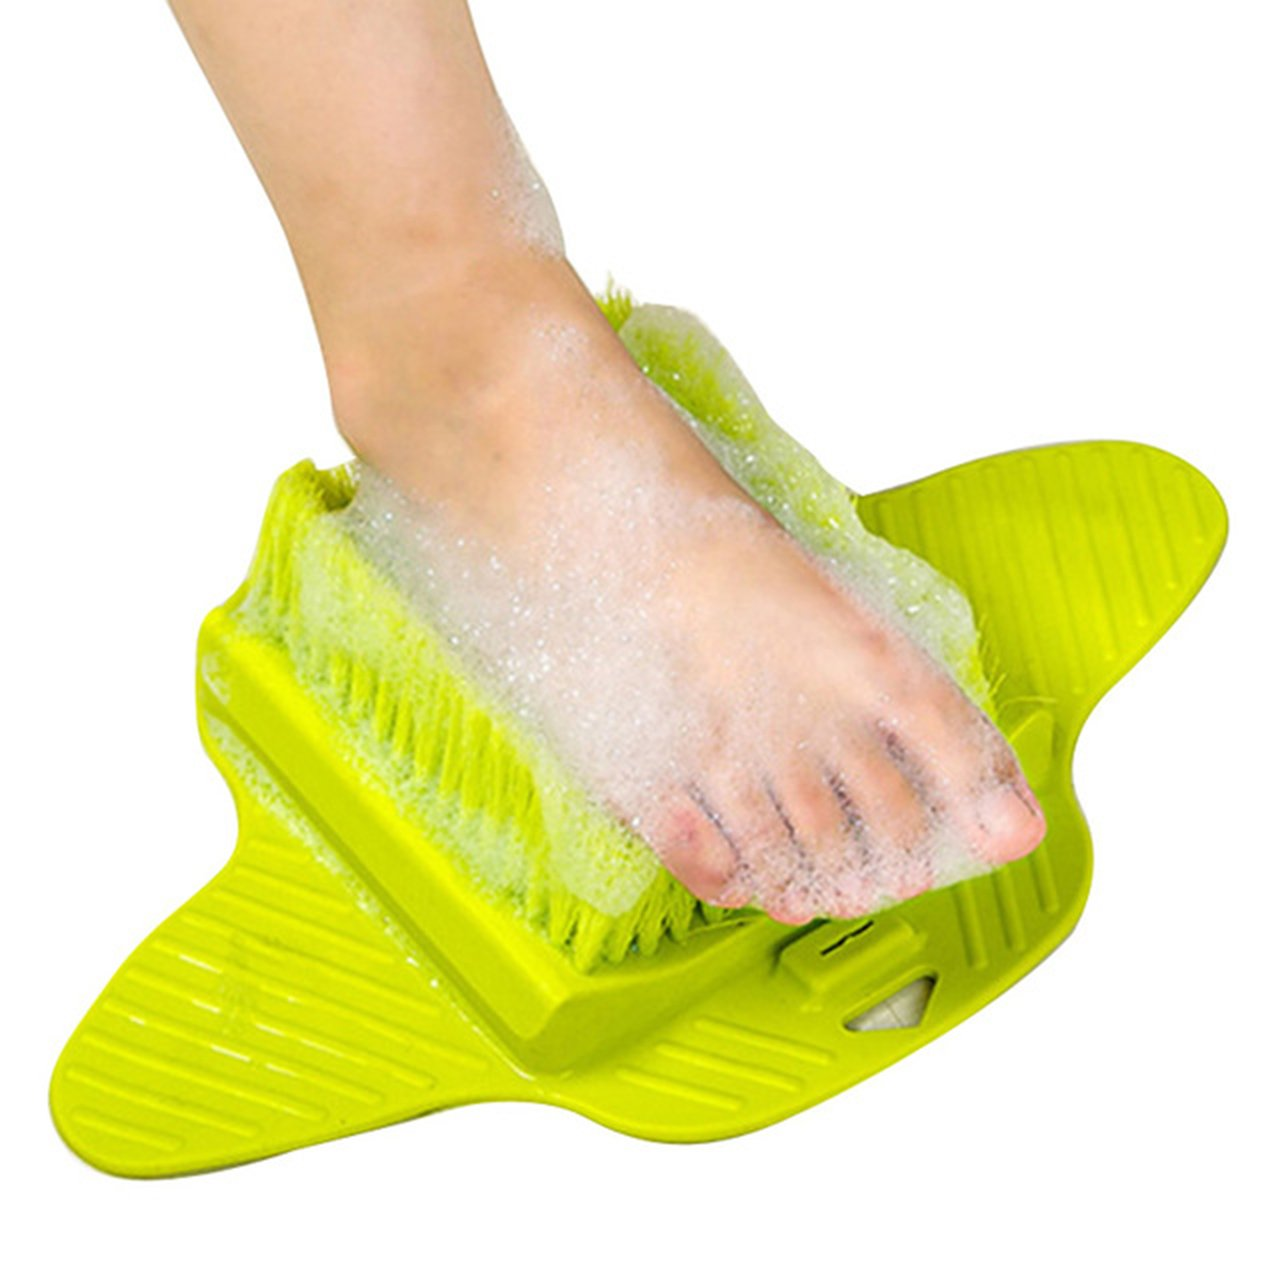 Siomentdi Adult Foot Massage Brush - Bath Blossom Scrub Brushes Foot Cleaner Exfoliating Feet Scrubber Spa Shower Remove Dead Skin Cleaning